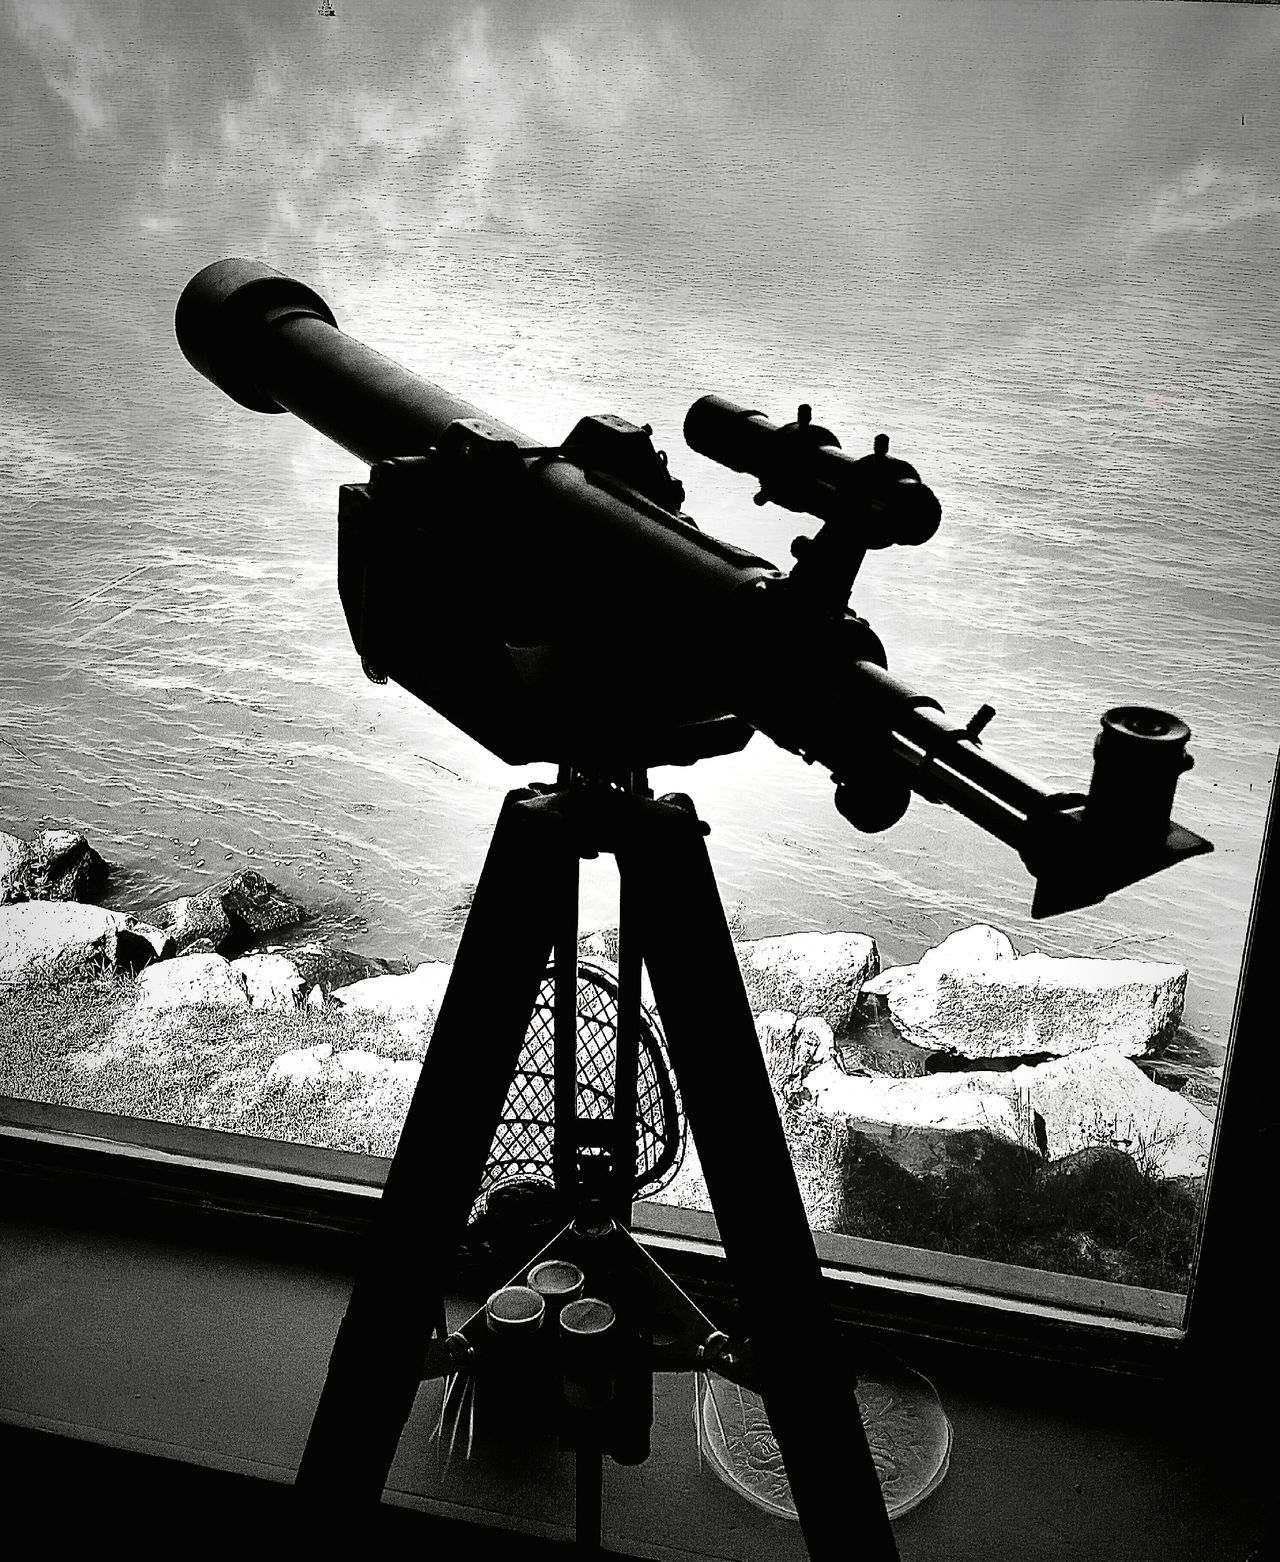 Hello World Enjoying The View Taking Photos Amherstburg Black & White Telescope Roomwithaview Getting Inspired Amateur Photography